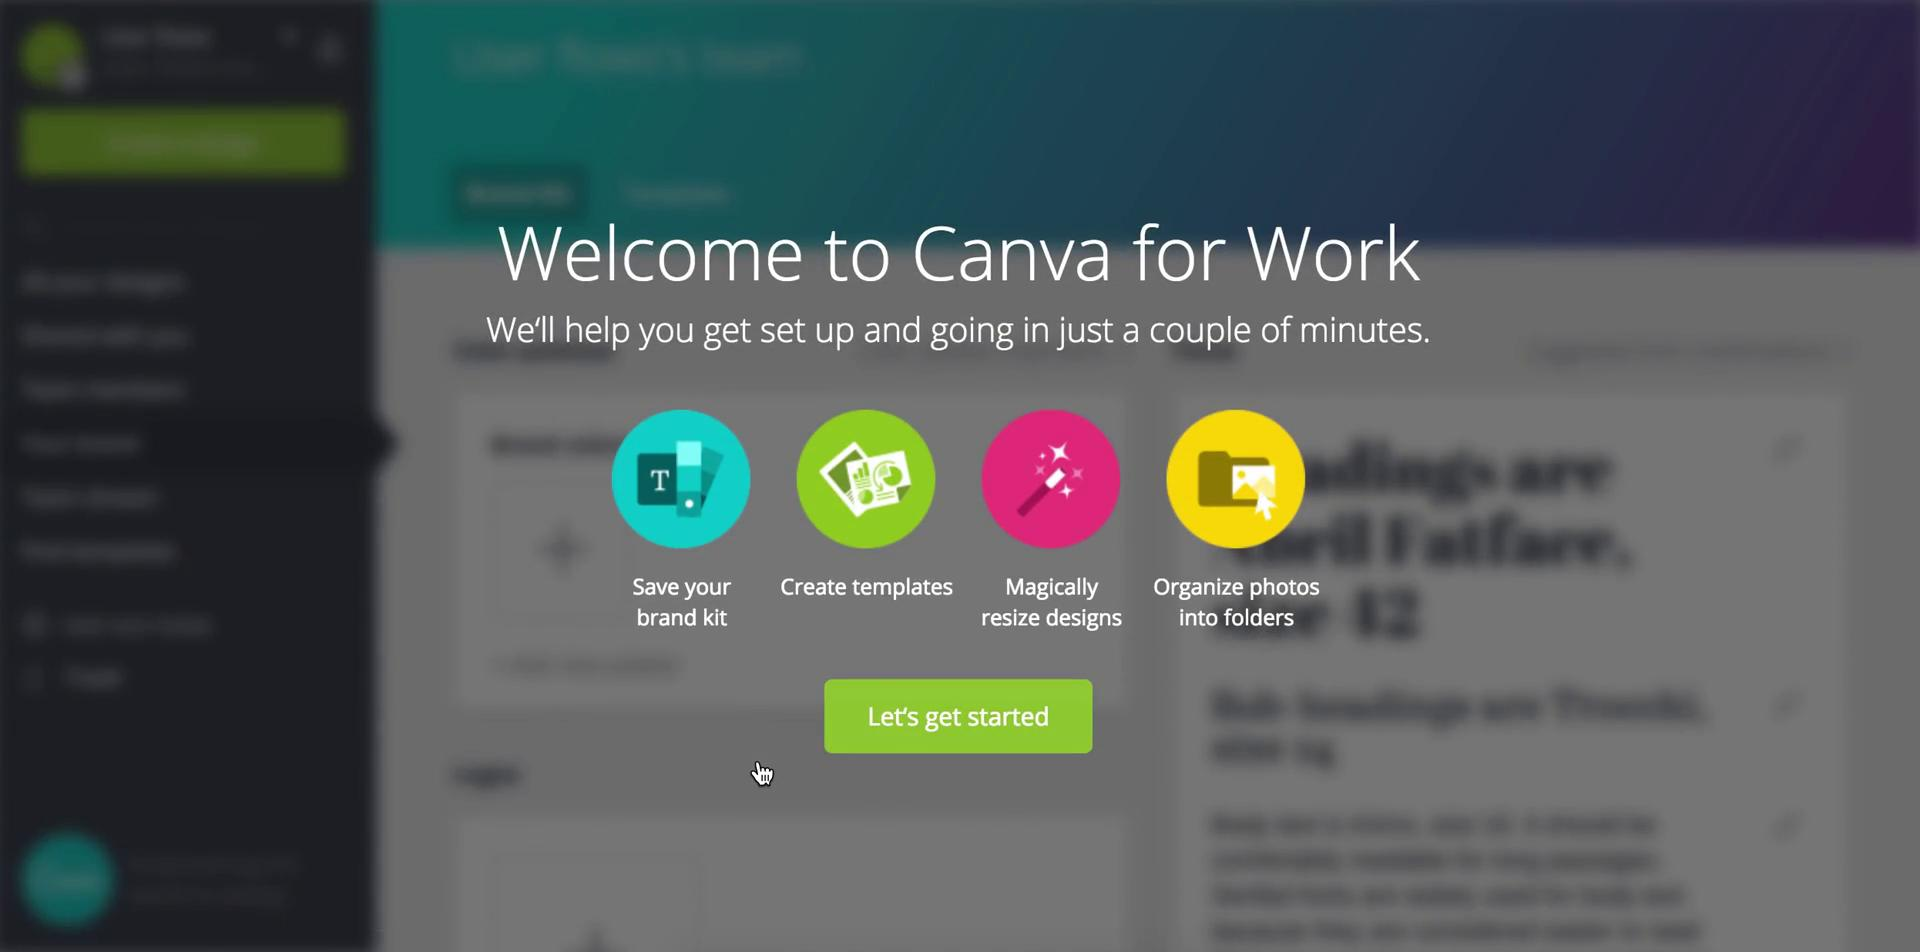 This image shows the new features we get after we upgraded our Canva account